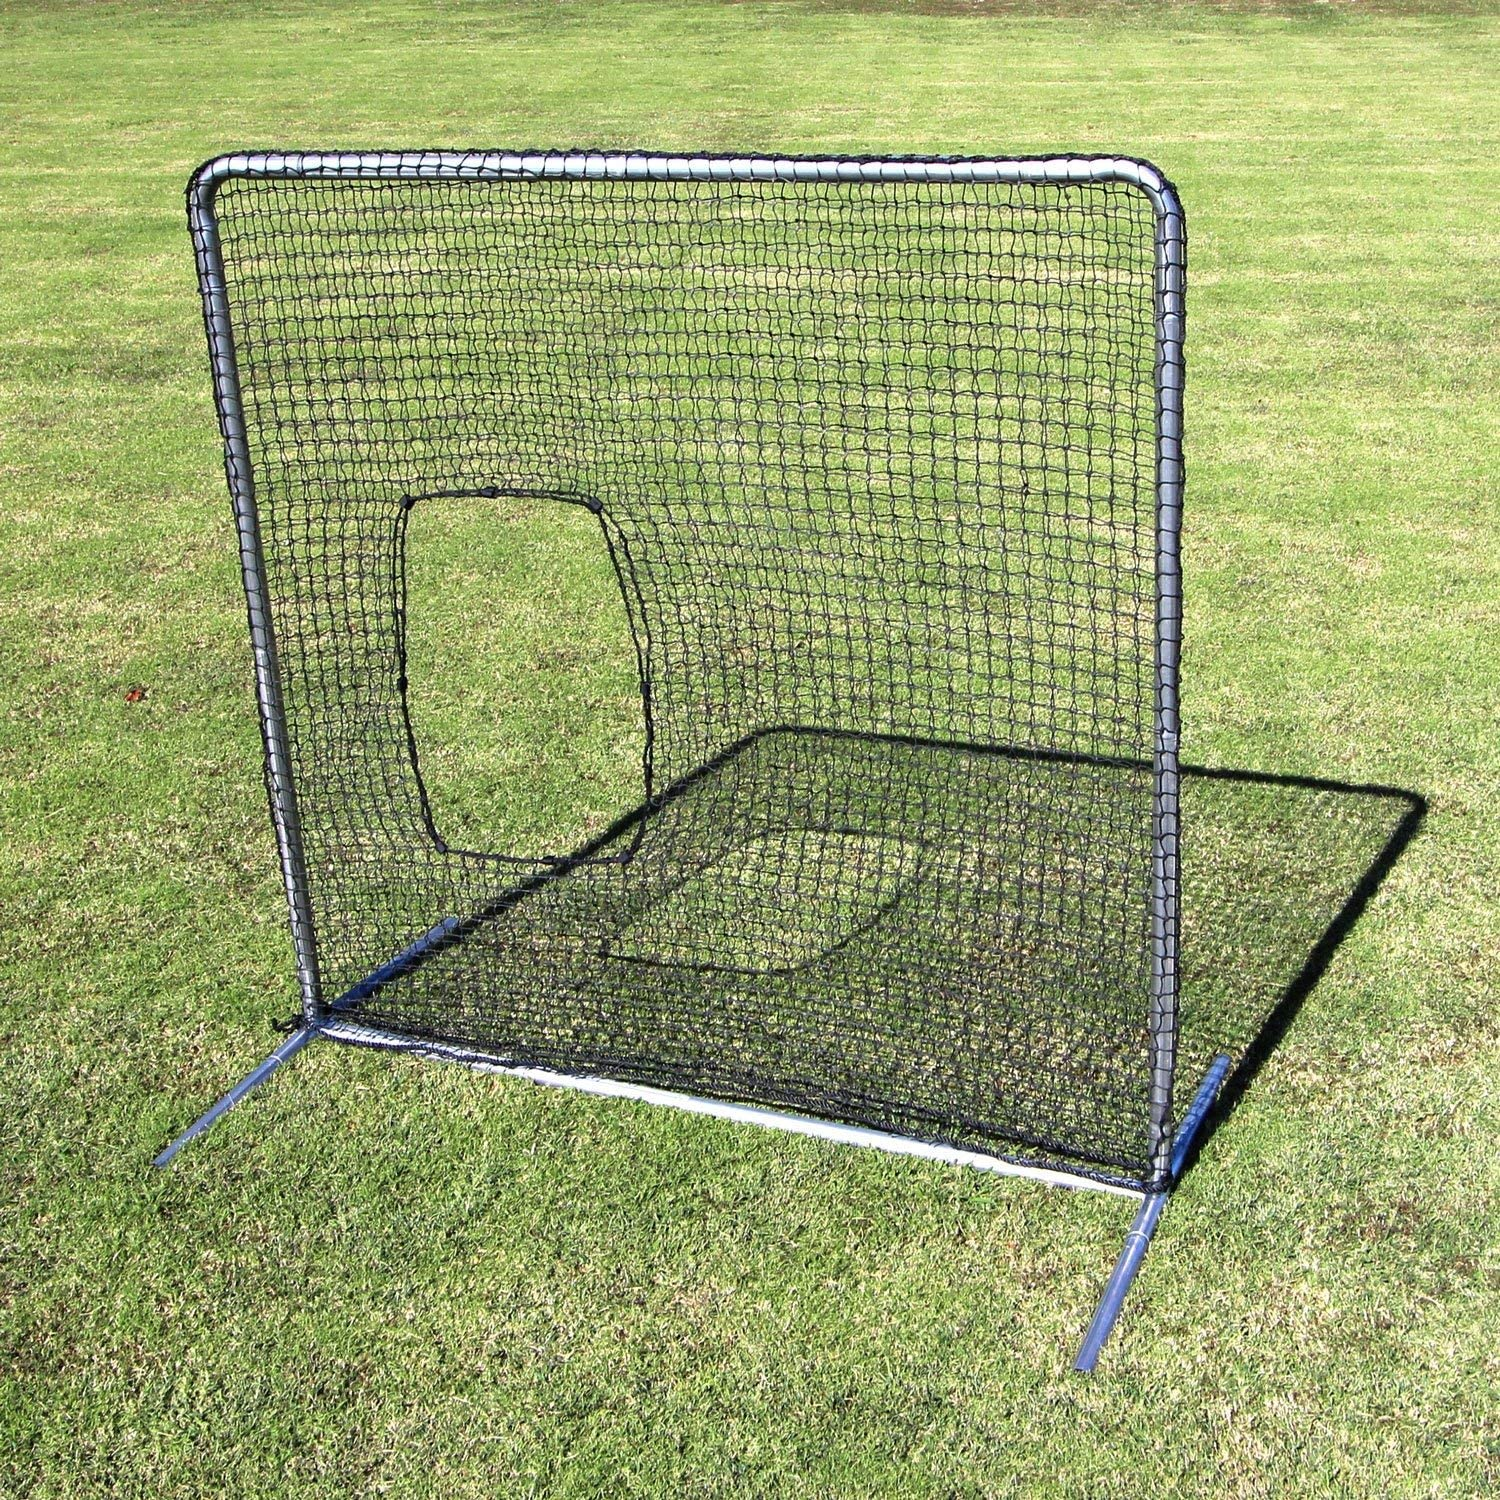 Cimarron Outdoor Sports Gaming Accessories Softball #42 Selling Fees free!! rankings Net 7x7